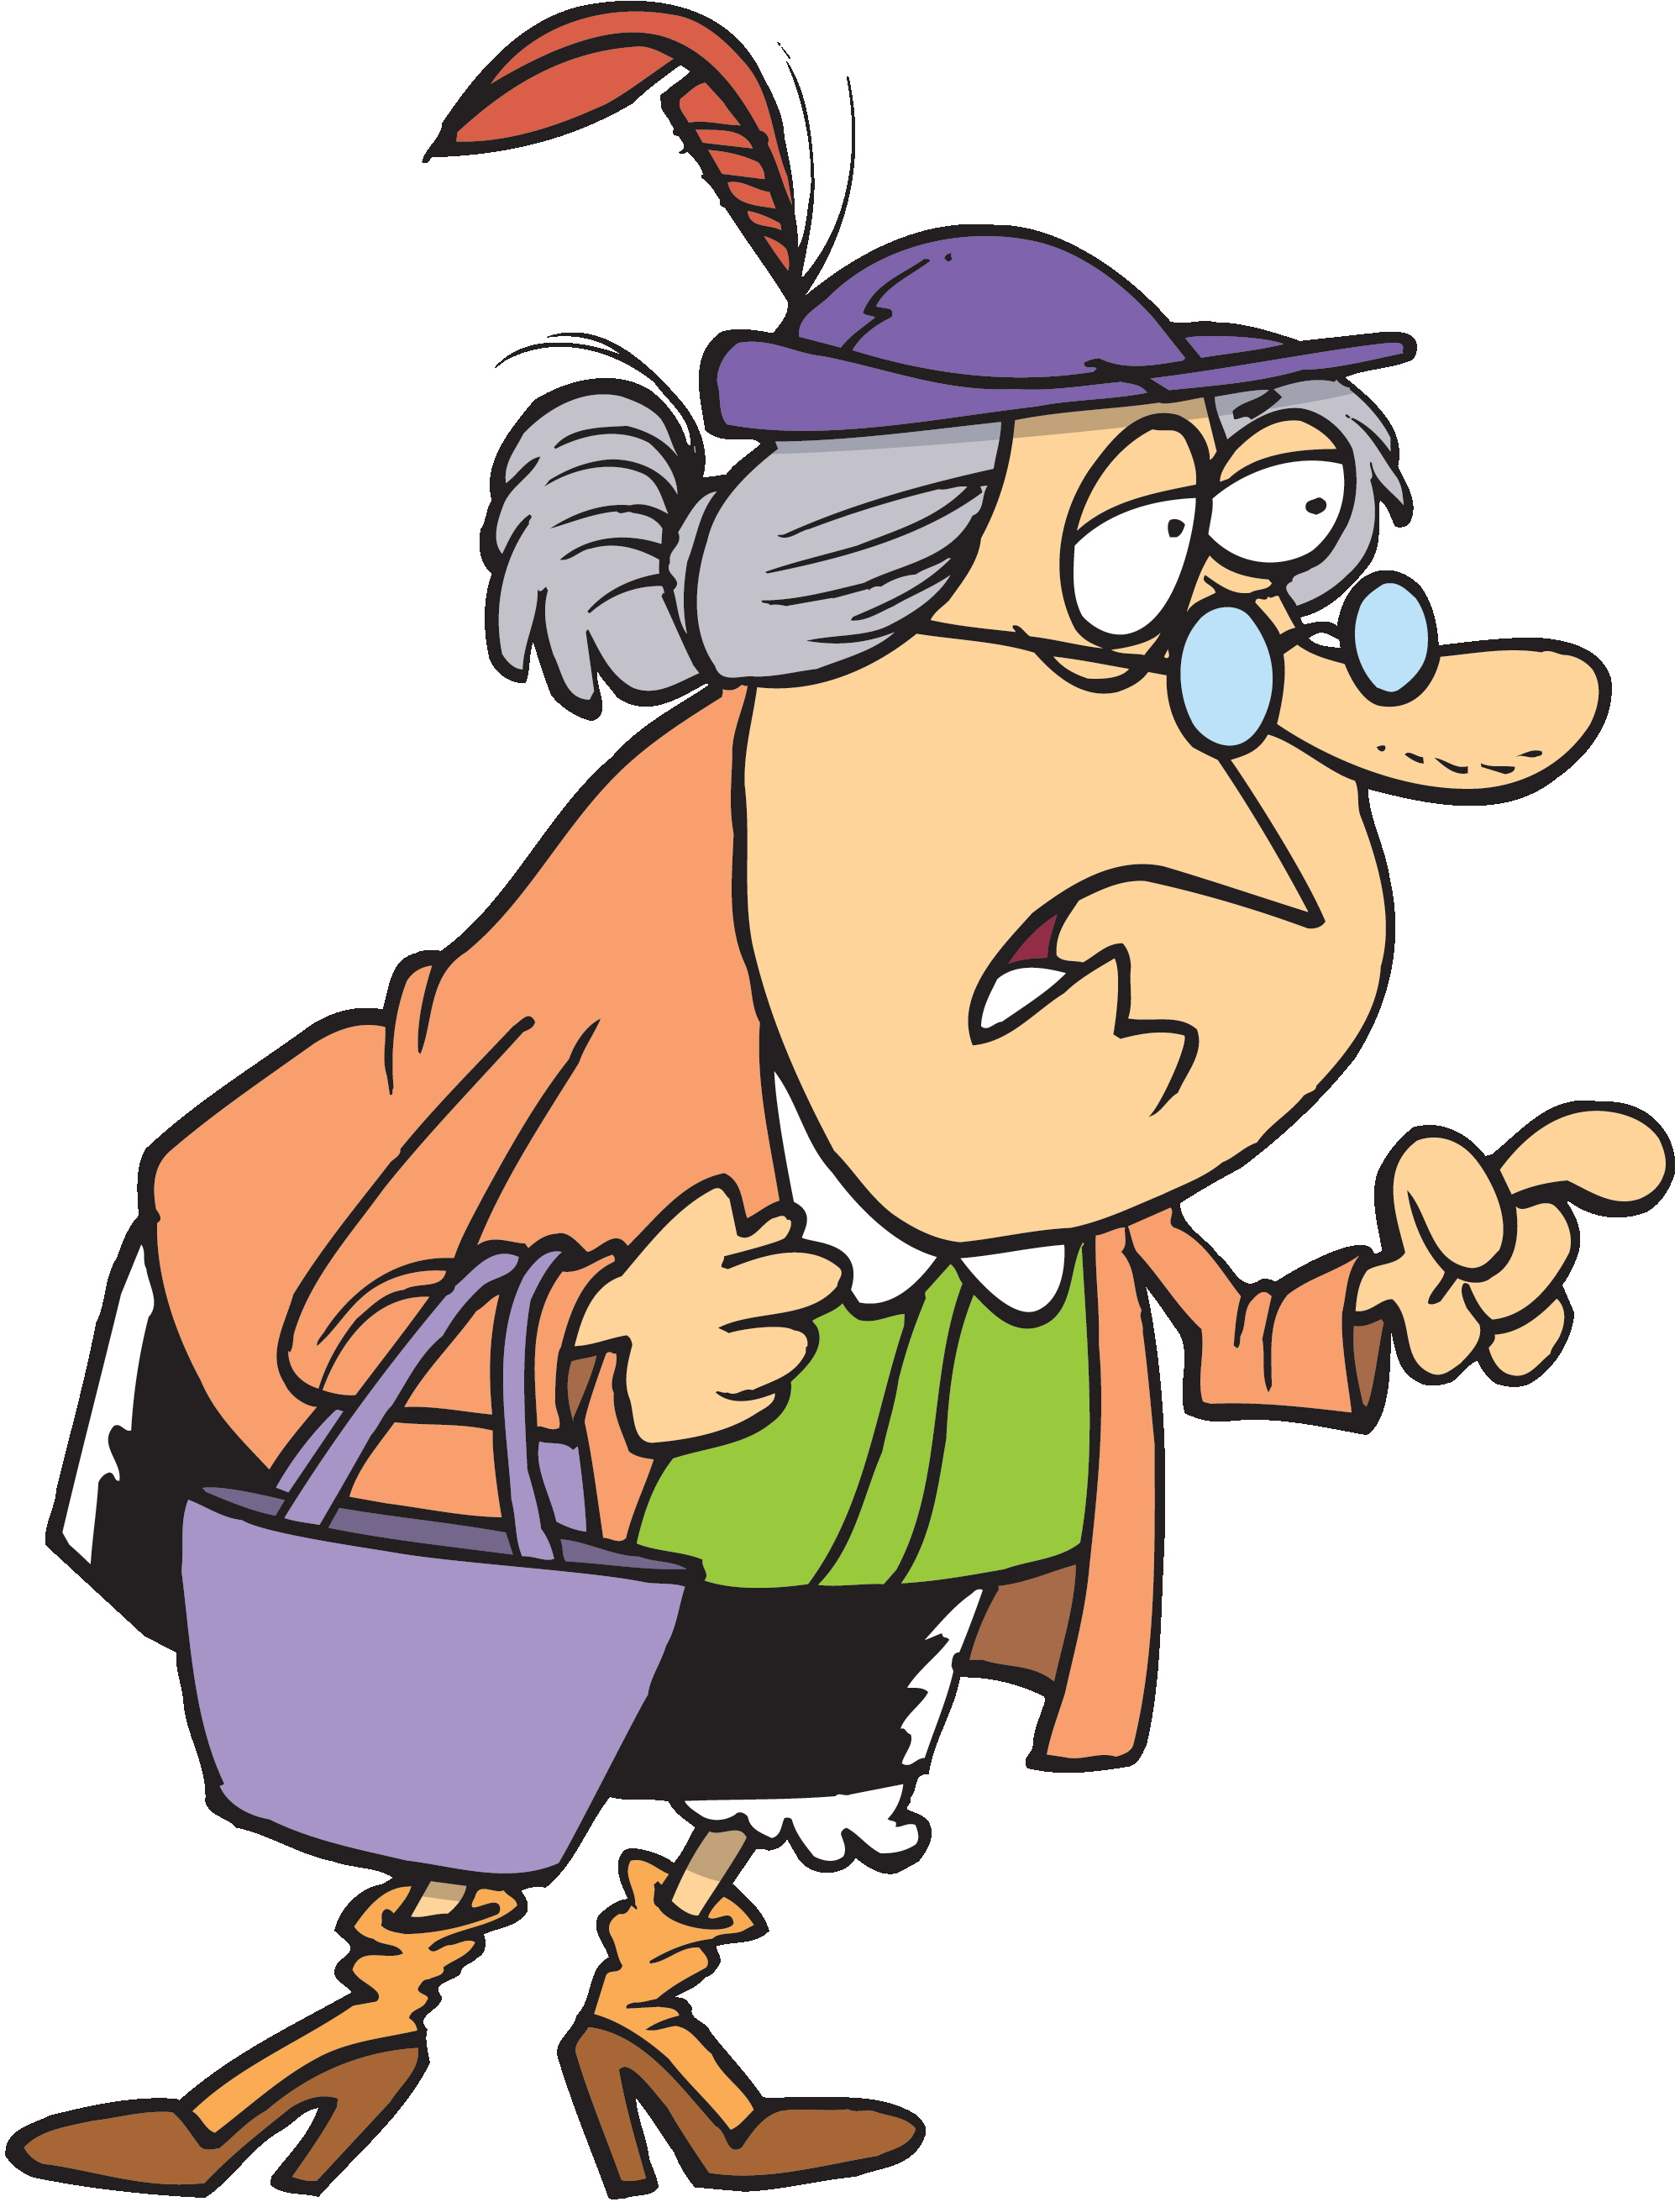 Old Woman Cartoon Clipart .